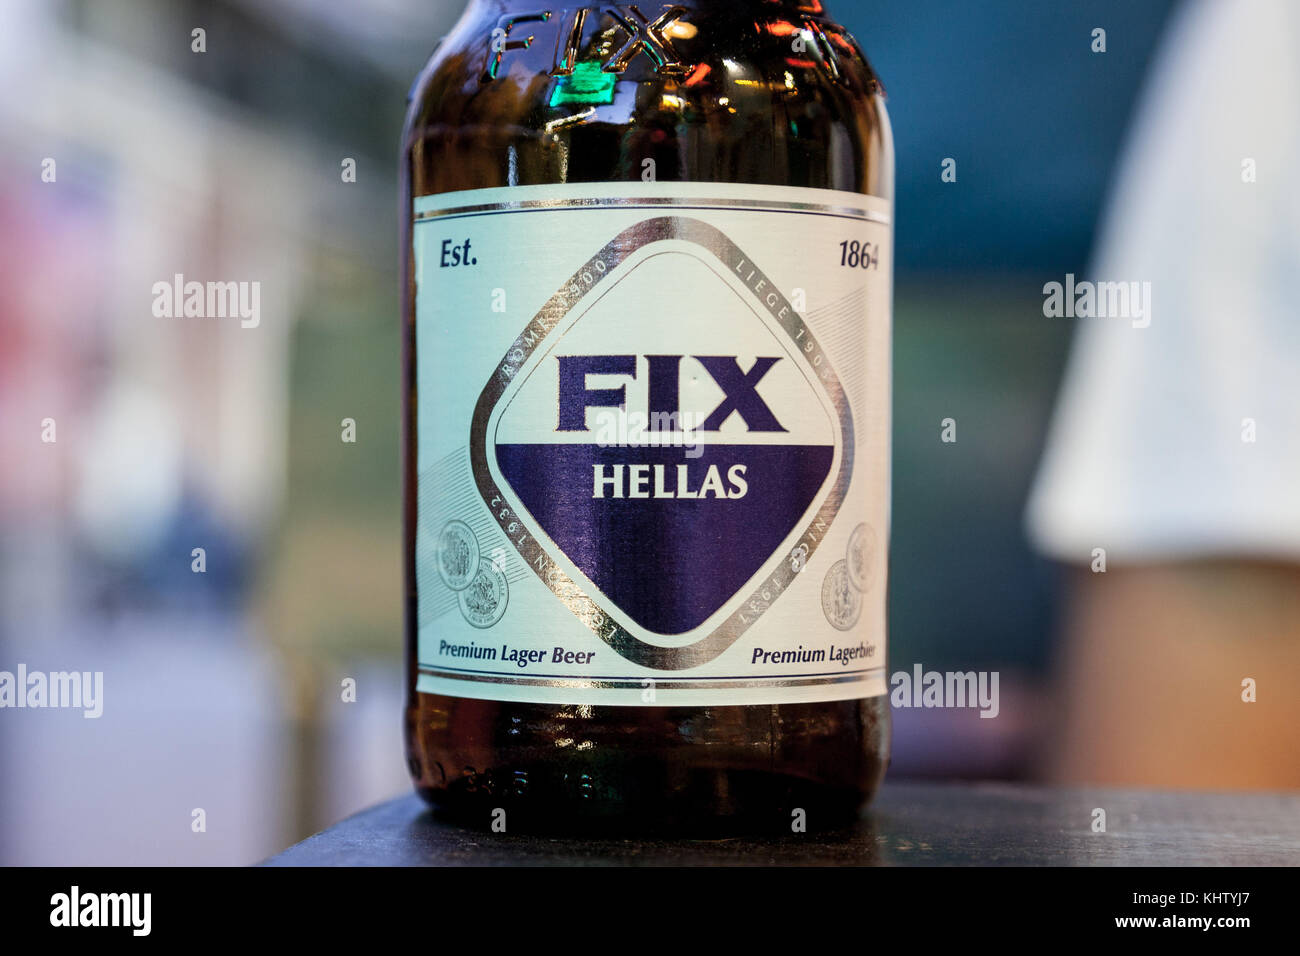 ATHENS, GREECE - NOVEMBER 3, 2017: Close up on a bottle of Fix Beer in a traditionnal glass bottle at night. Fix, - Stock Image